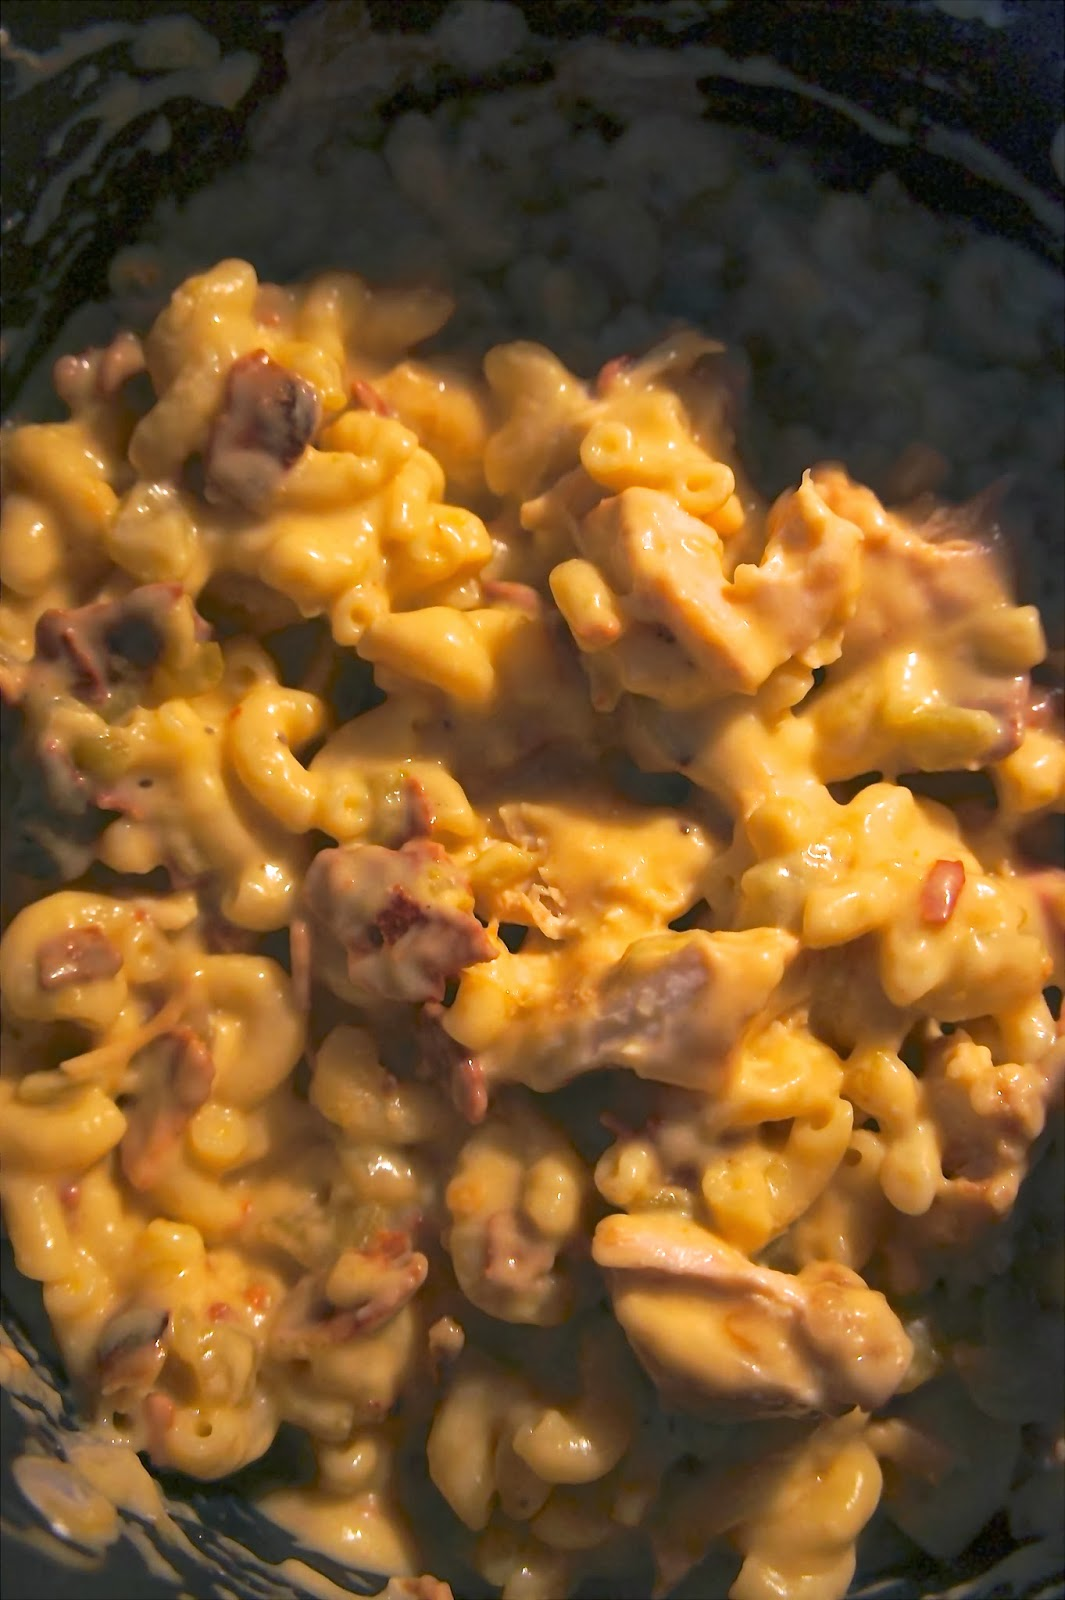 Savory Sweet and Satisfying: Green Chili, Chicken and Bacon Macaroni and Cheese